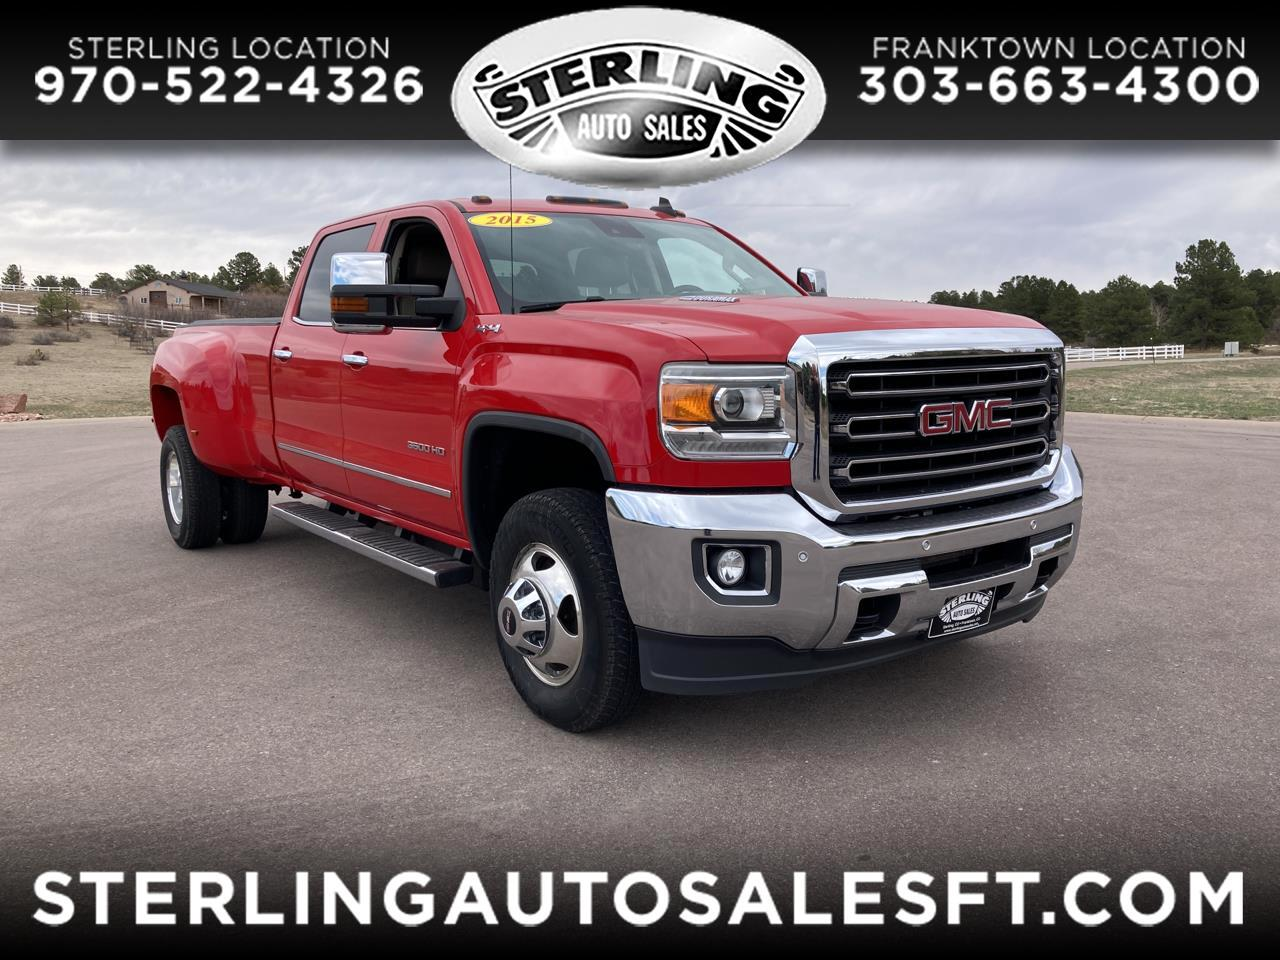 "GMC Sierra 3500HD available WiFi 4WD Crew Cab 153.7"" SLT 2015"